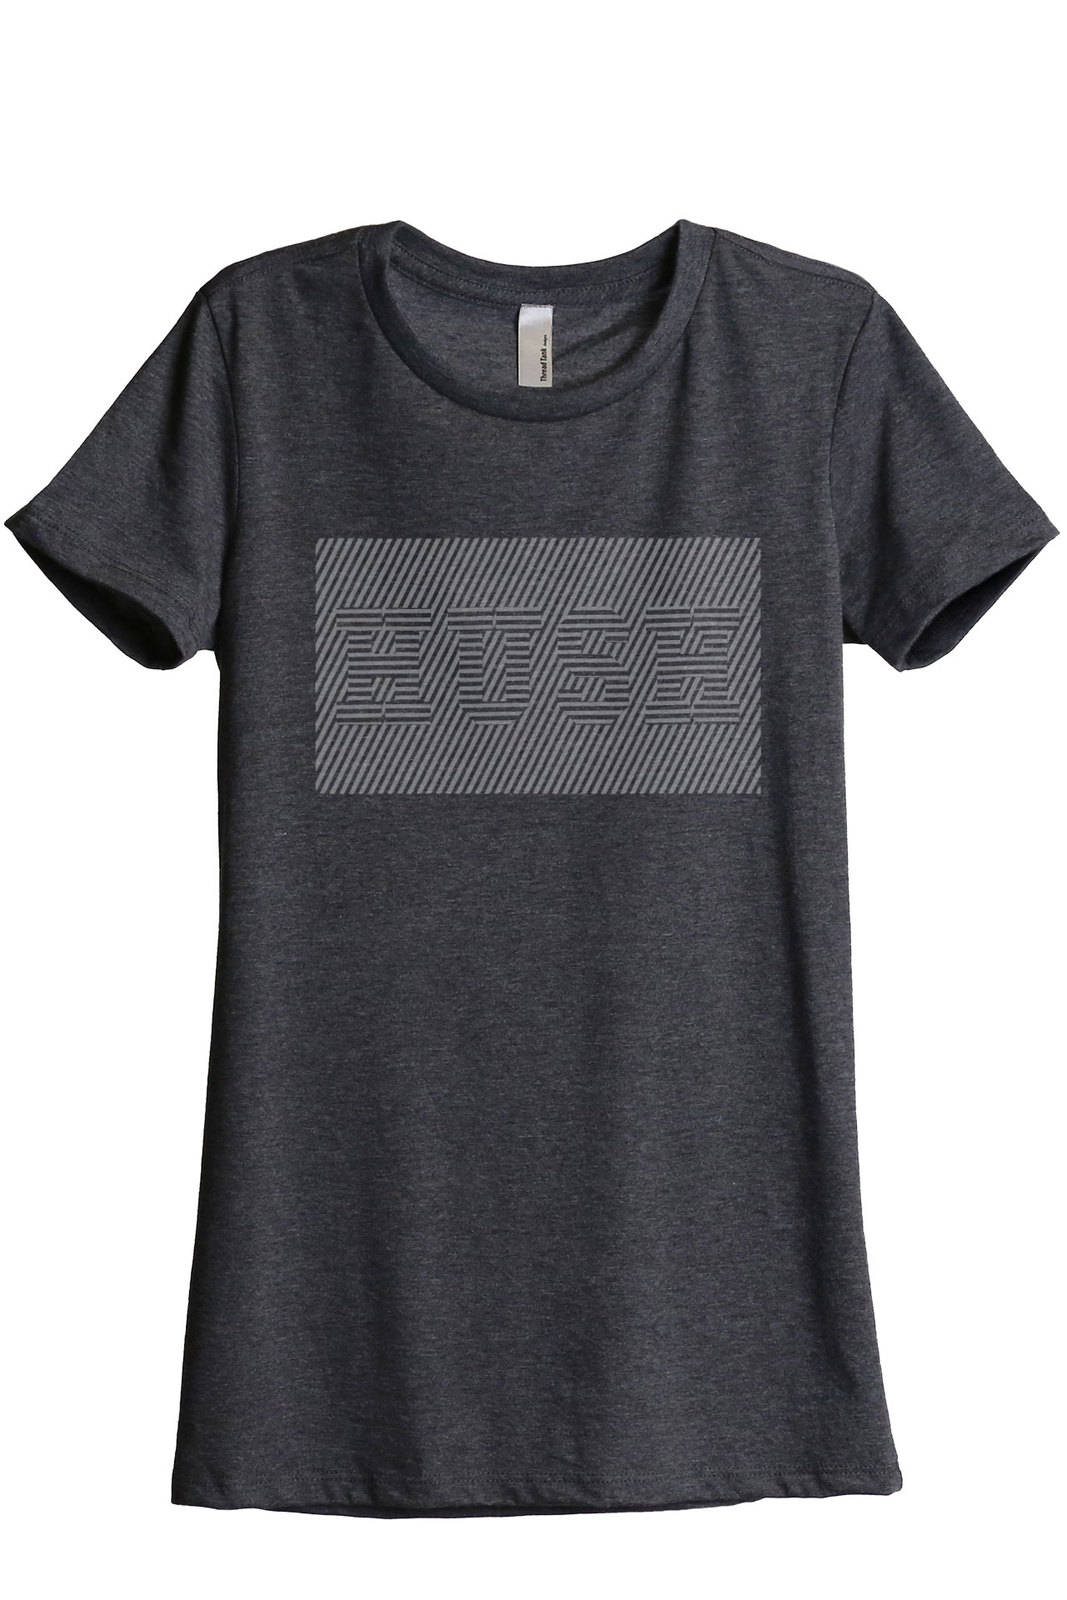 Hush Women's Relaxed T-Shirt Tee Charcoal Grey